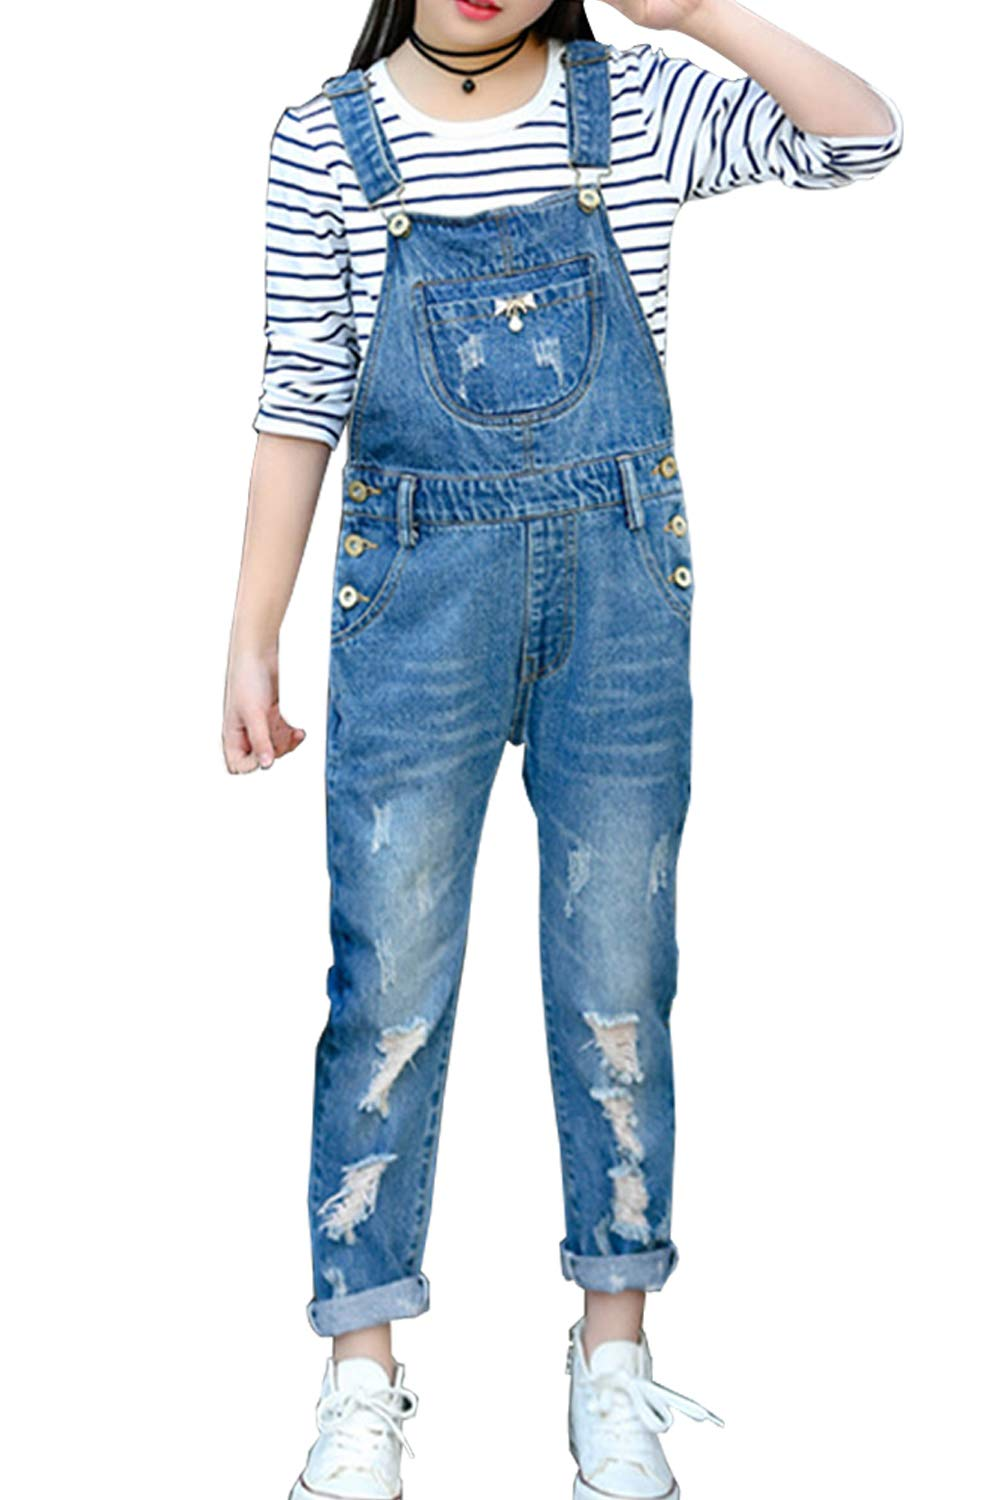 LAVIQK 3-14Years Kids Big Girls Jumpsuits & Rompers Distressed Denim Overalls Blue Long Jeans Strecthy Ripped Jeans by LAVIQK